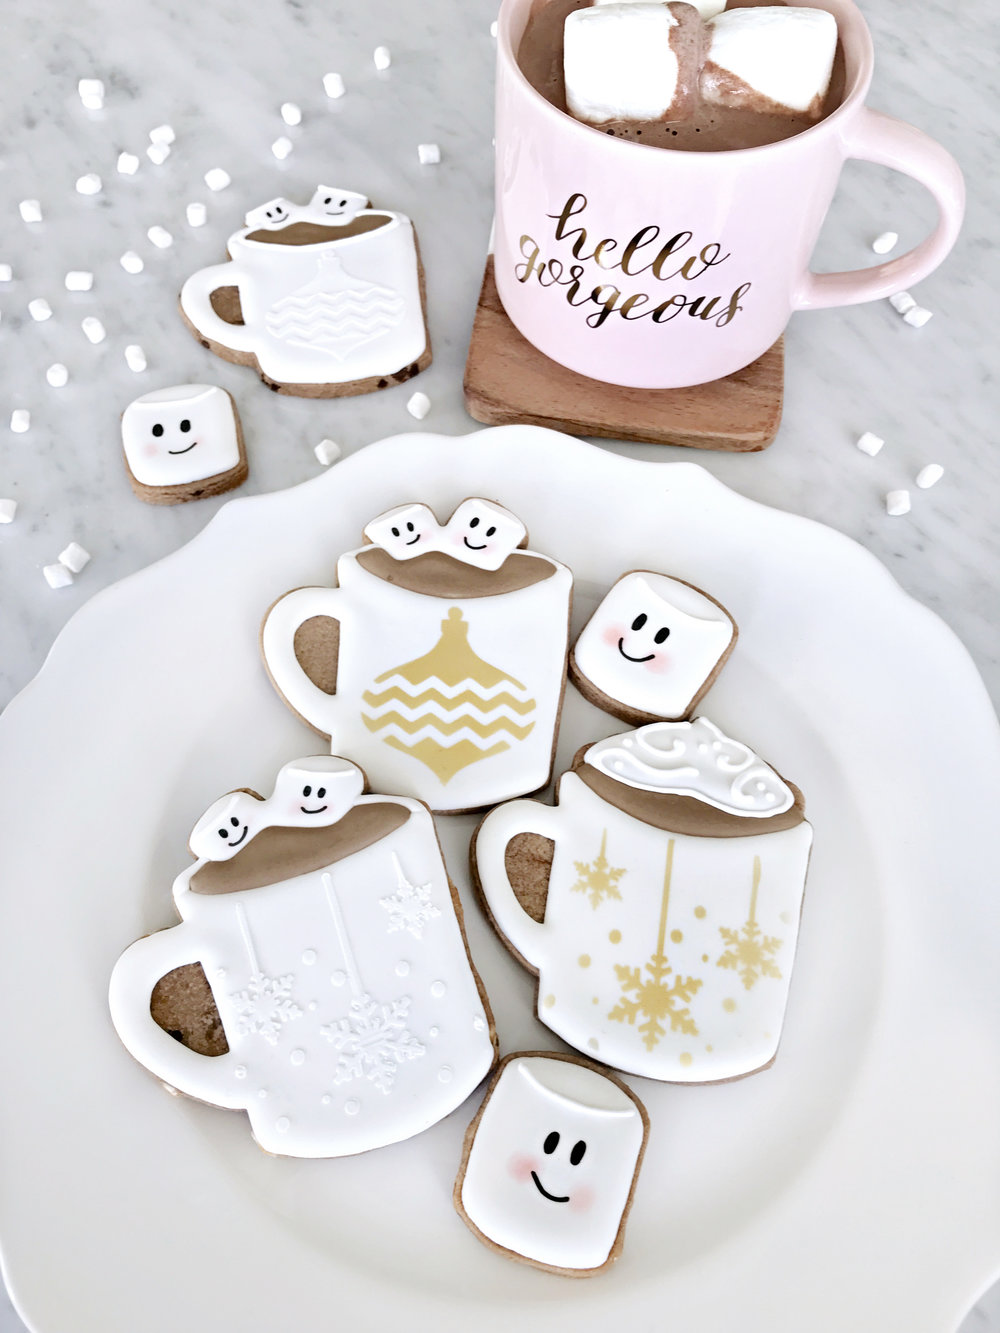 Fun, wintery cuteness on a plate